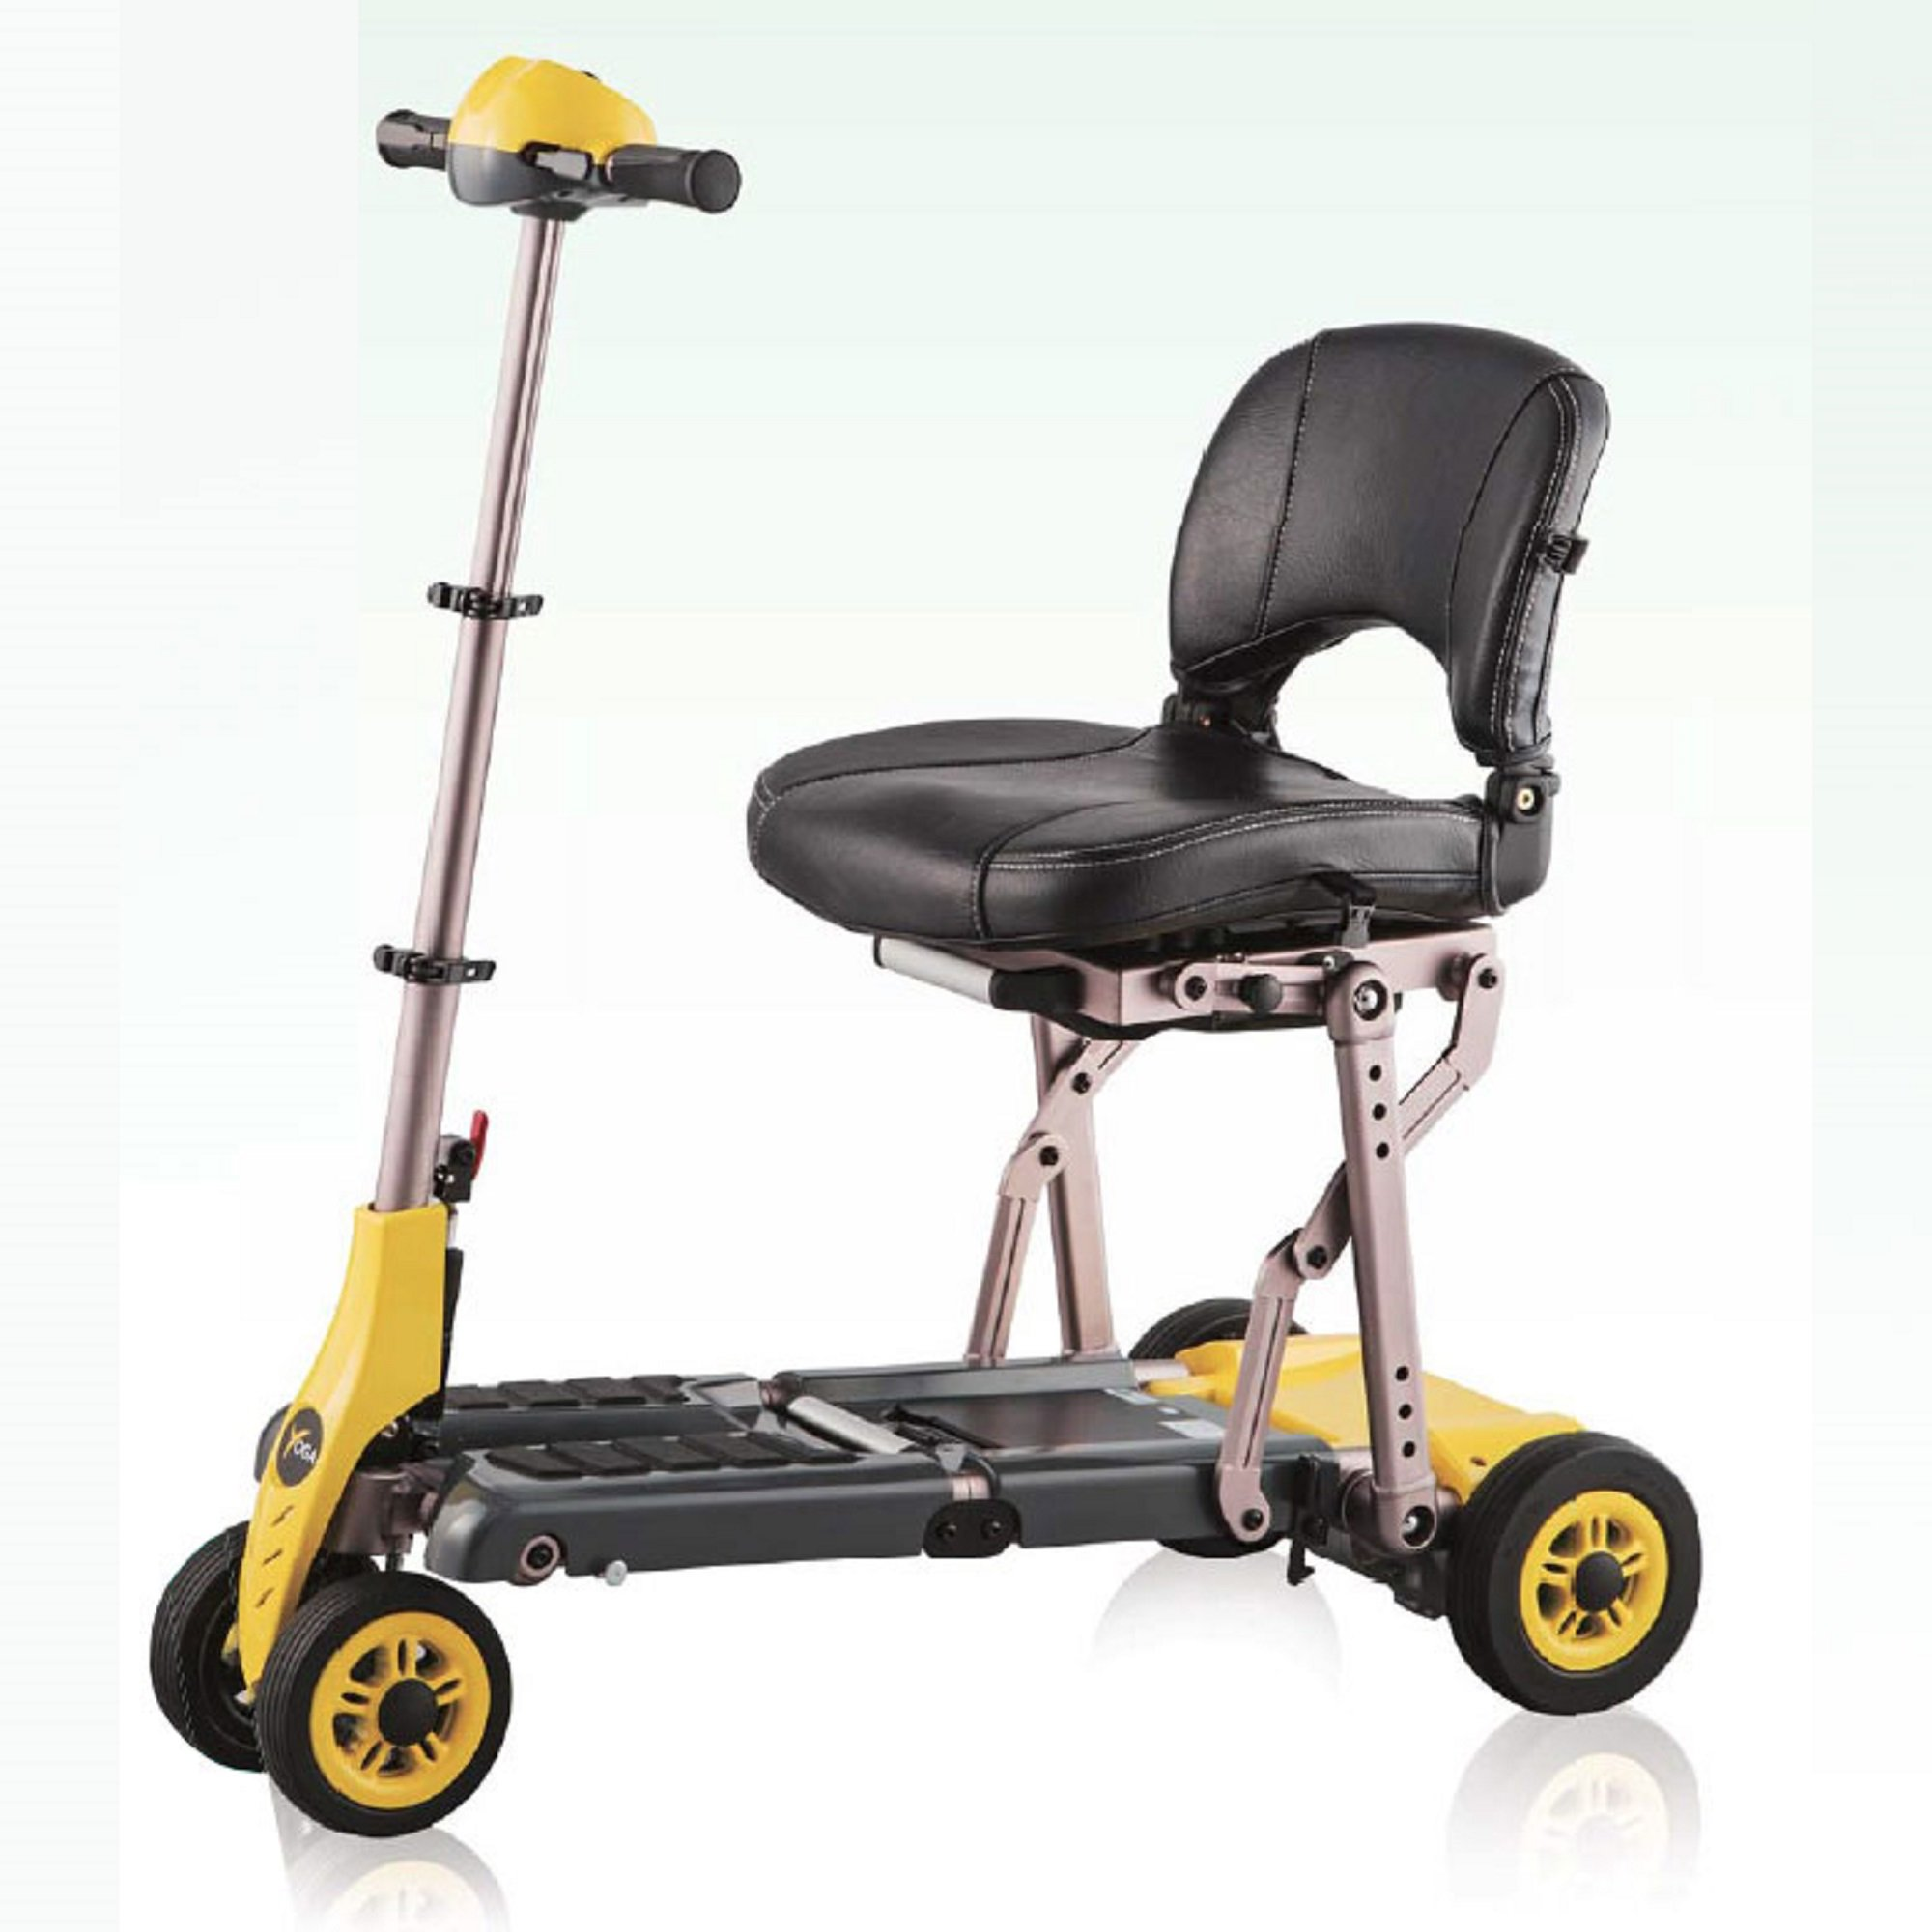 Merits Health Products - Yoga - 4-Wheel Portable Folding Scooter - 16''W x 14''D - Yellow